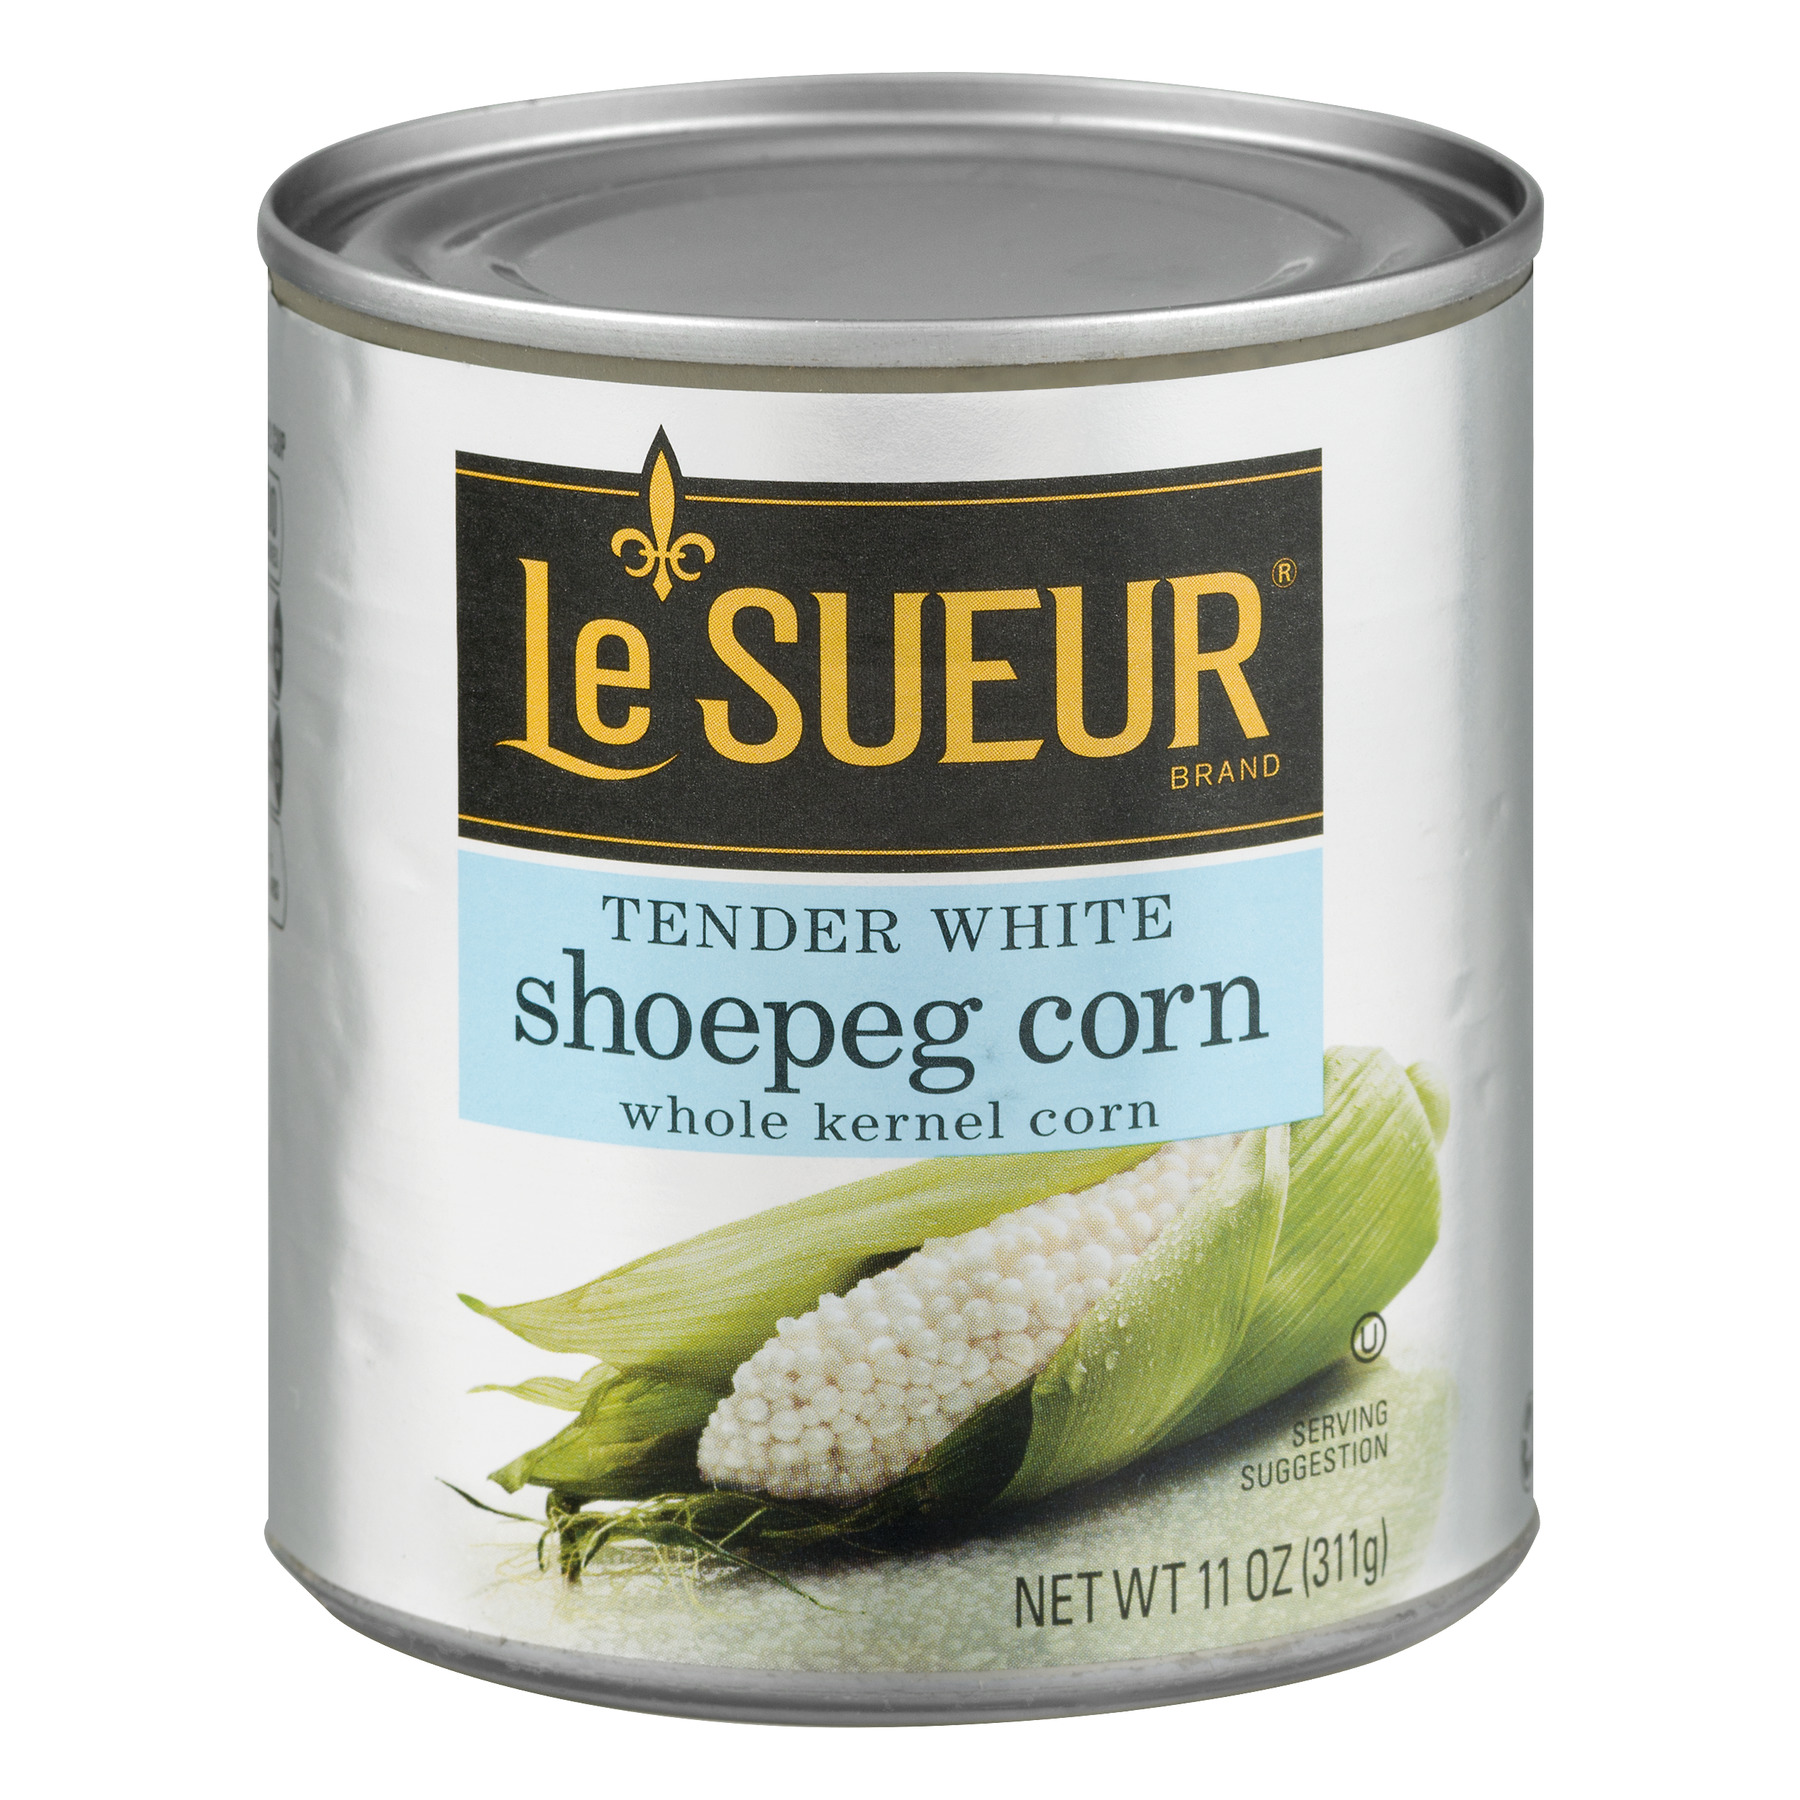 Le Sueur Tender White Shoepeg Corn Whole Kernel Corn, 11.0 OZ